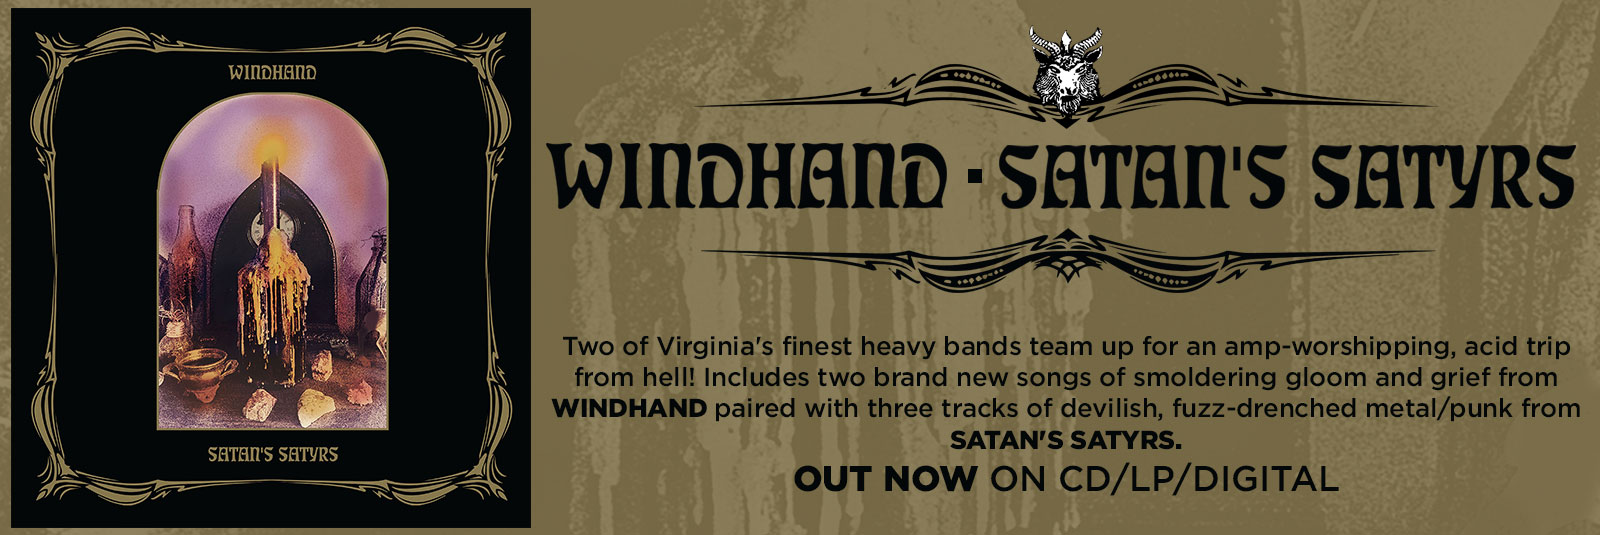 windhand-satans-satyrs-split-relapse-out-now